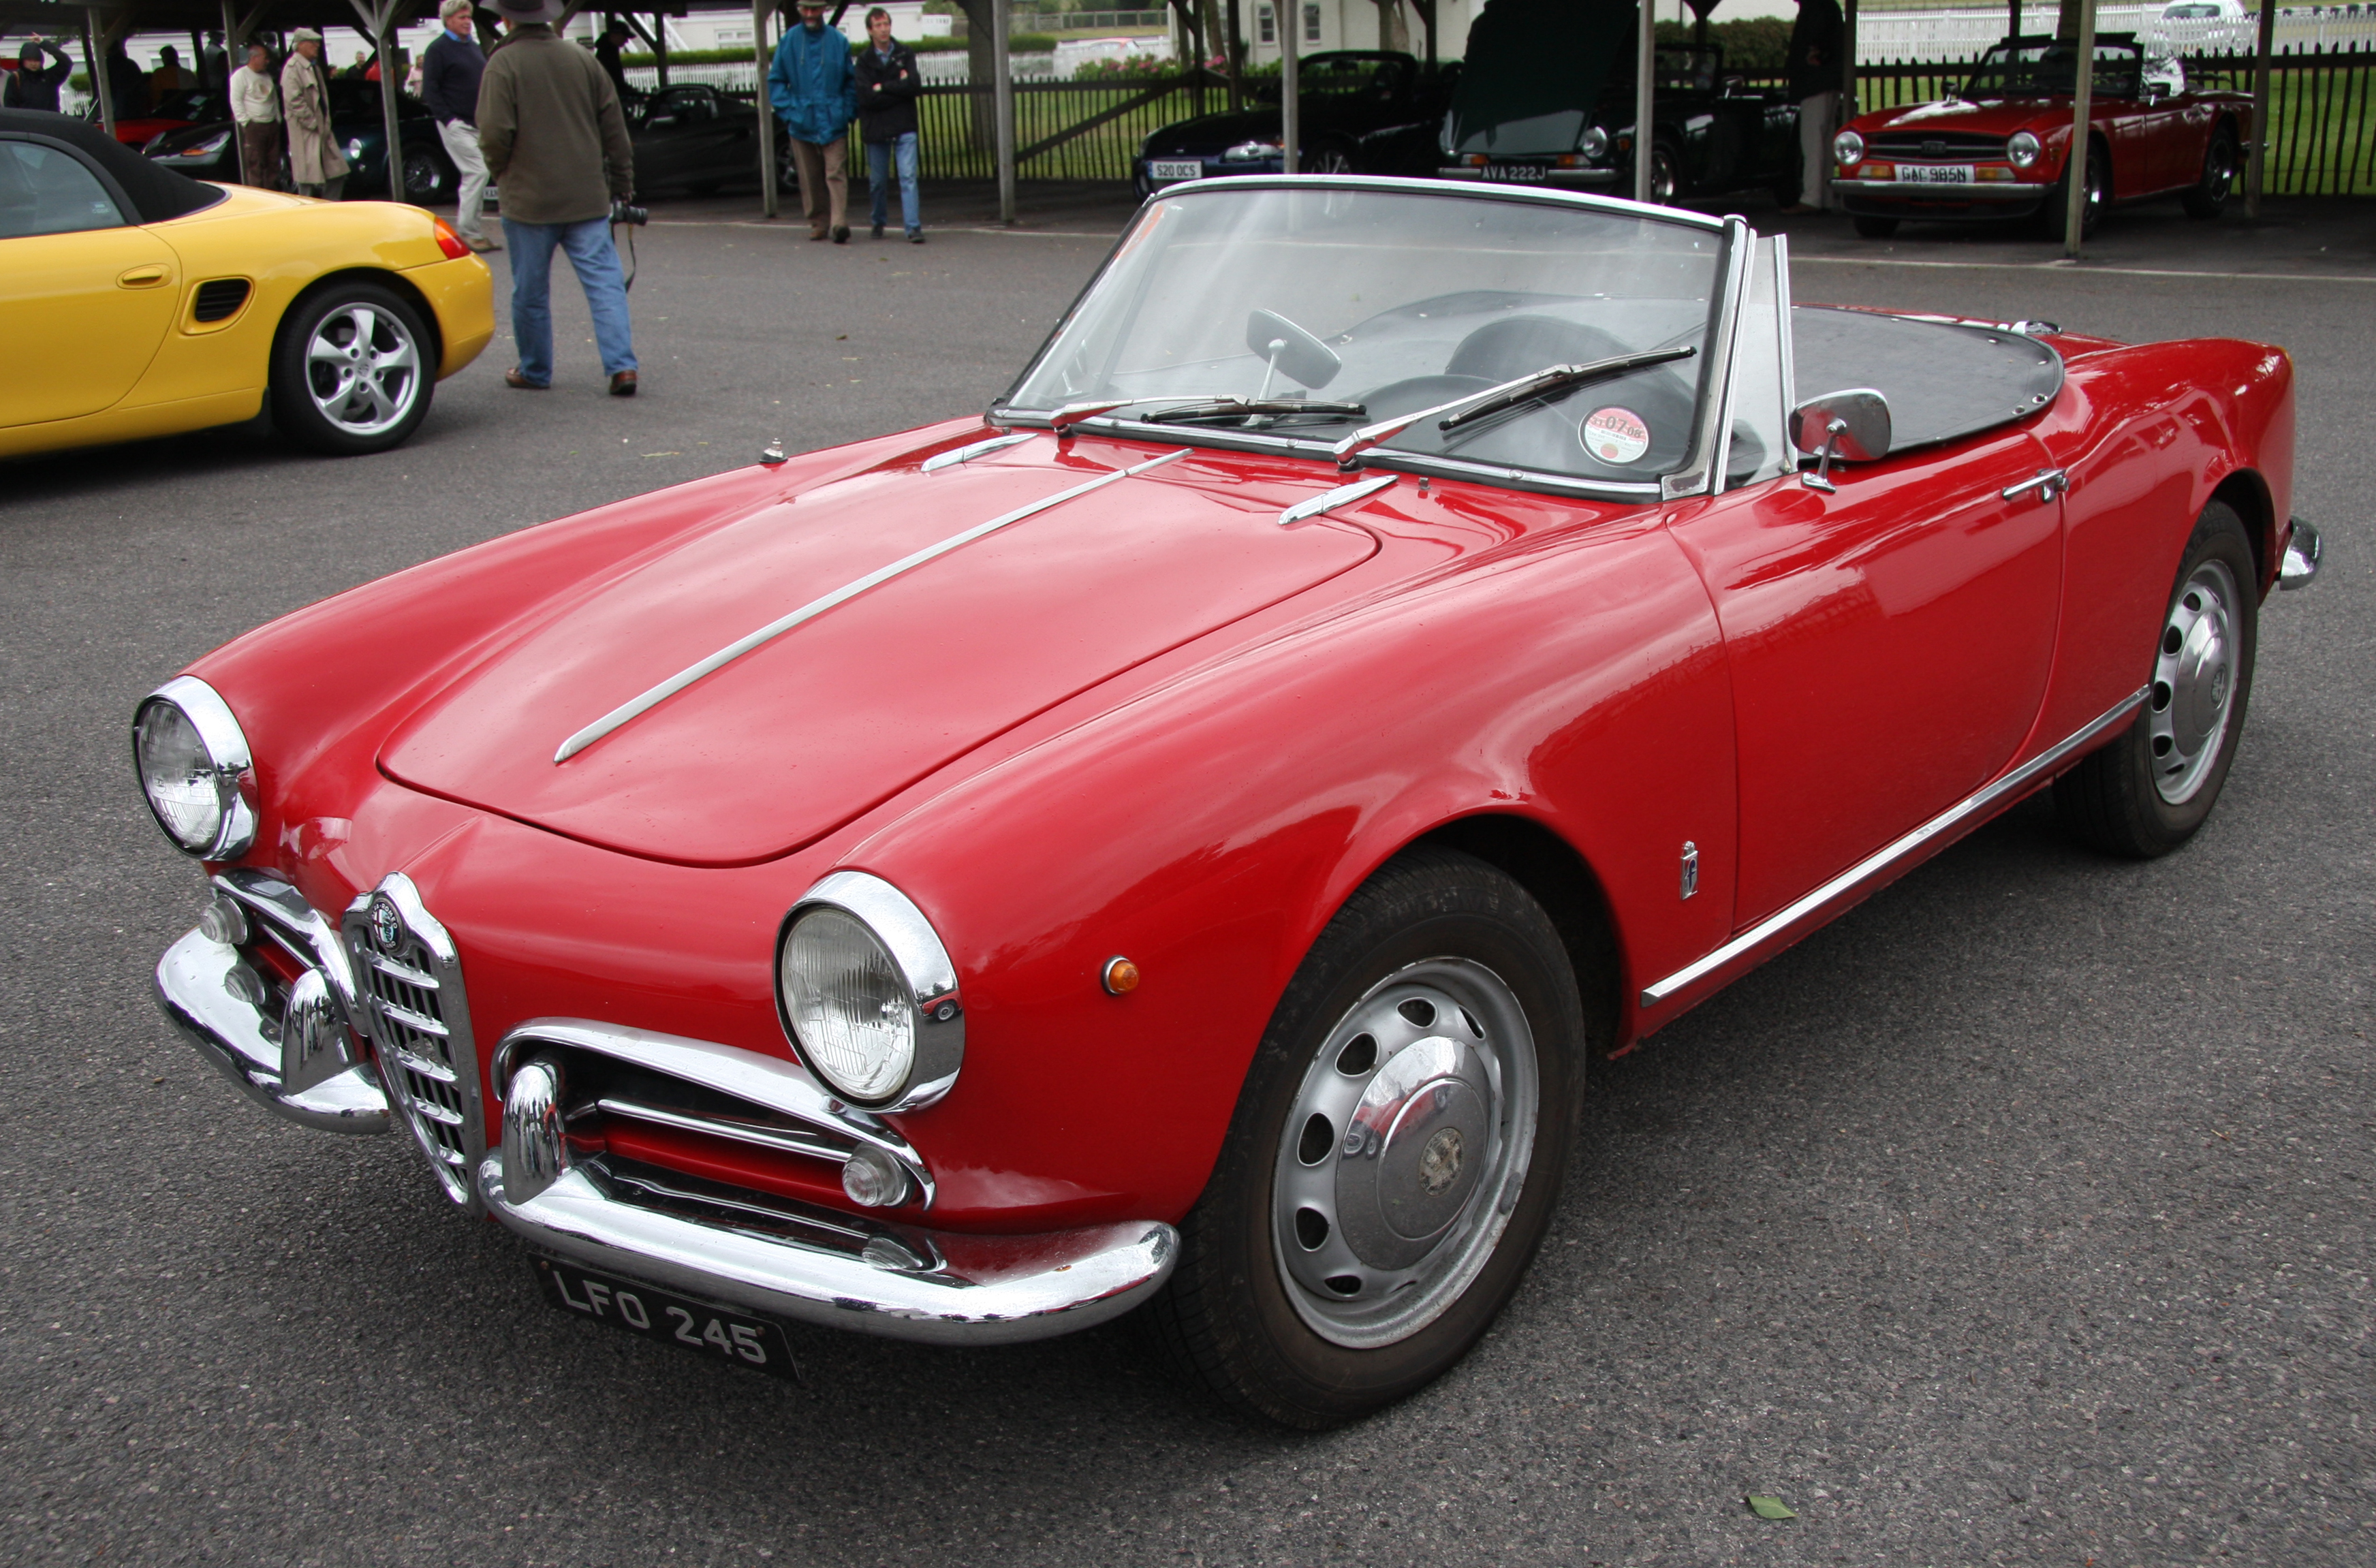 Picture of red roadster Alfa Romeo Giulietta, classic car, retro car